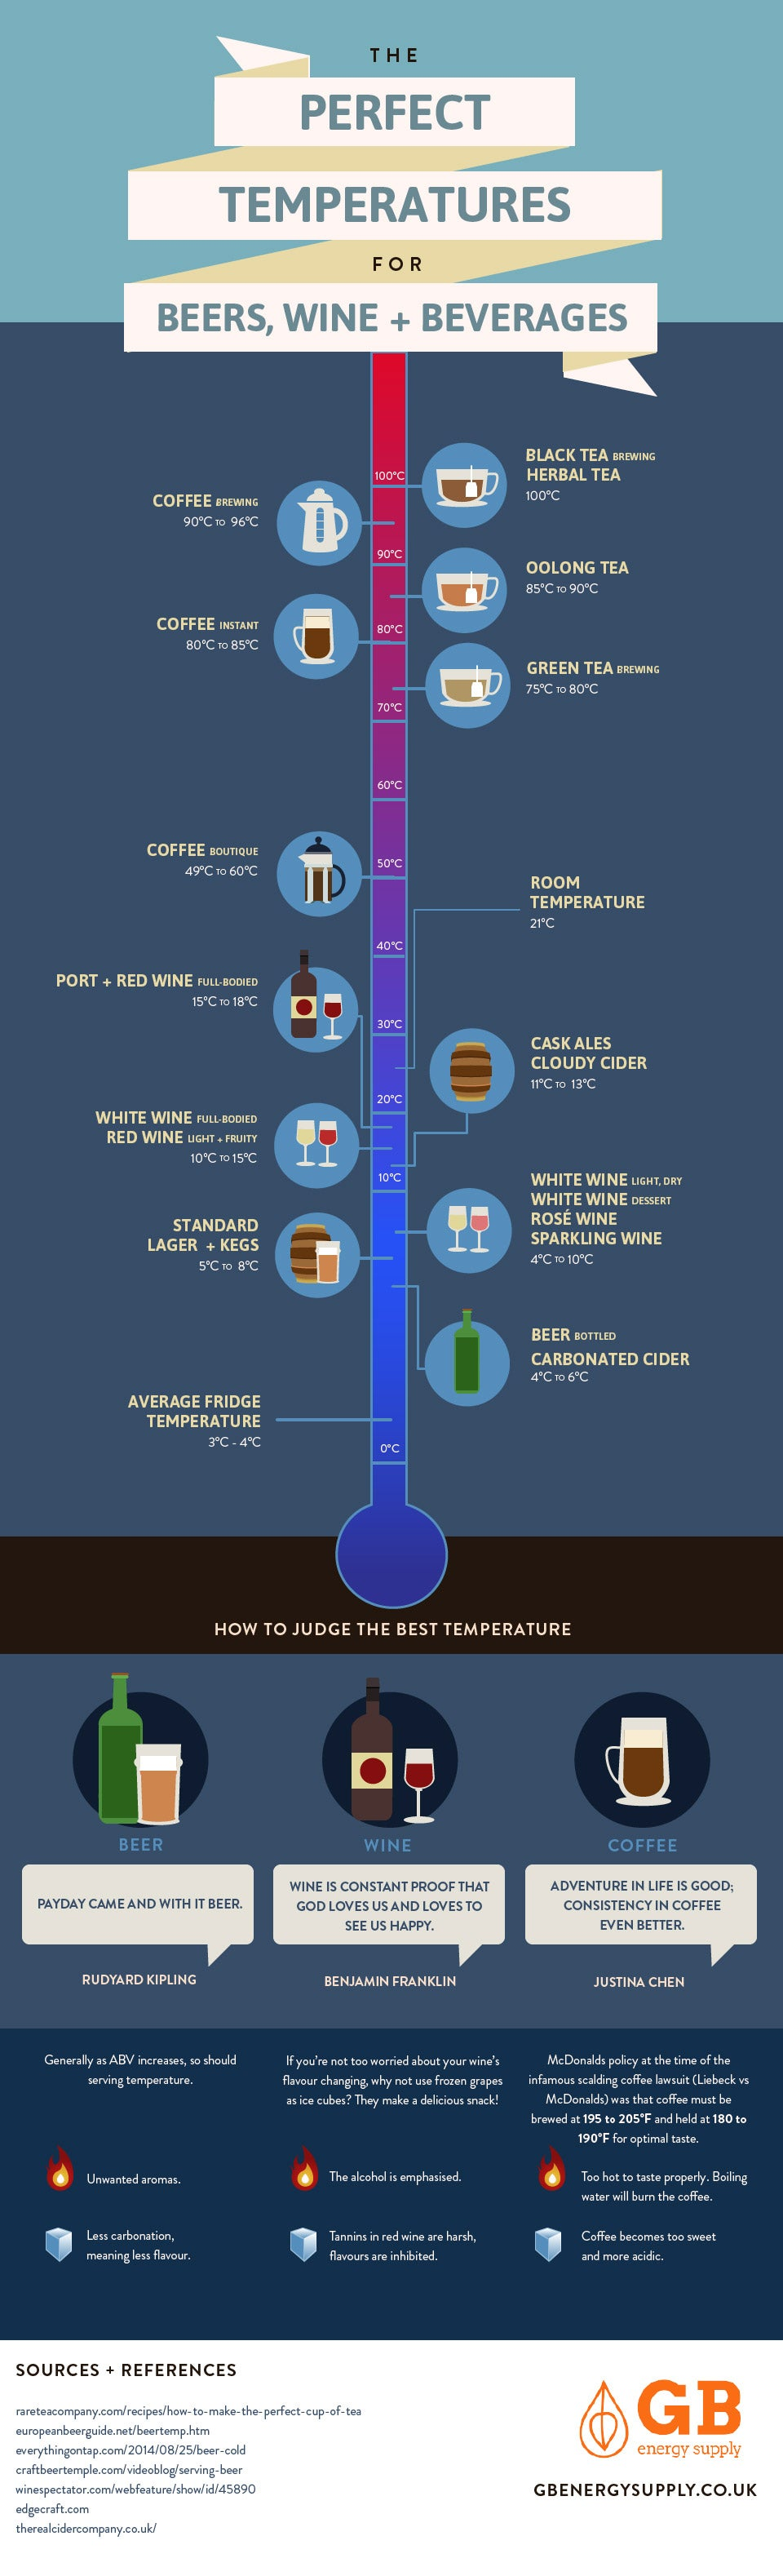 The Ideal Temperature for Beer, Coffee, and Other Beverages